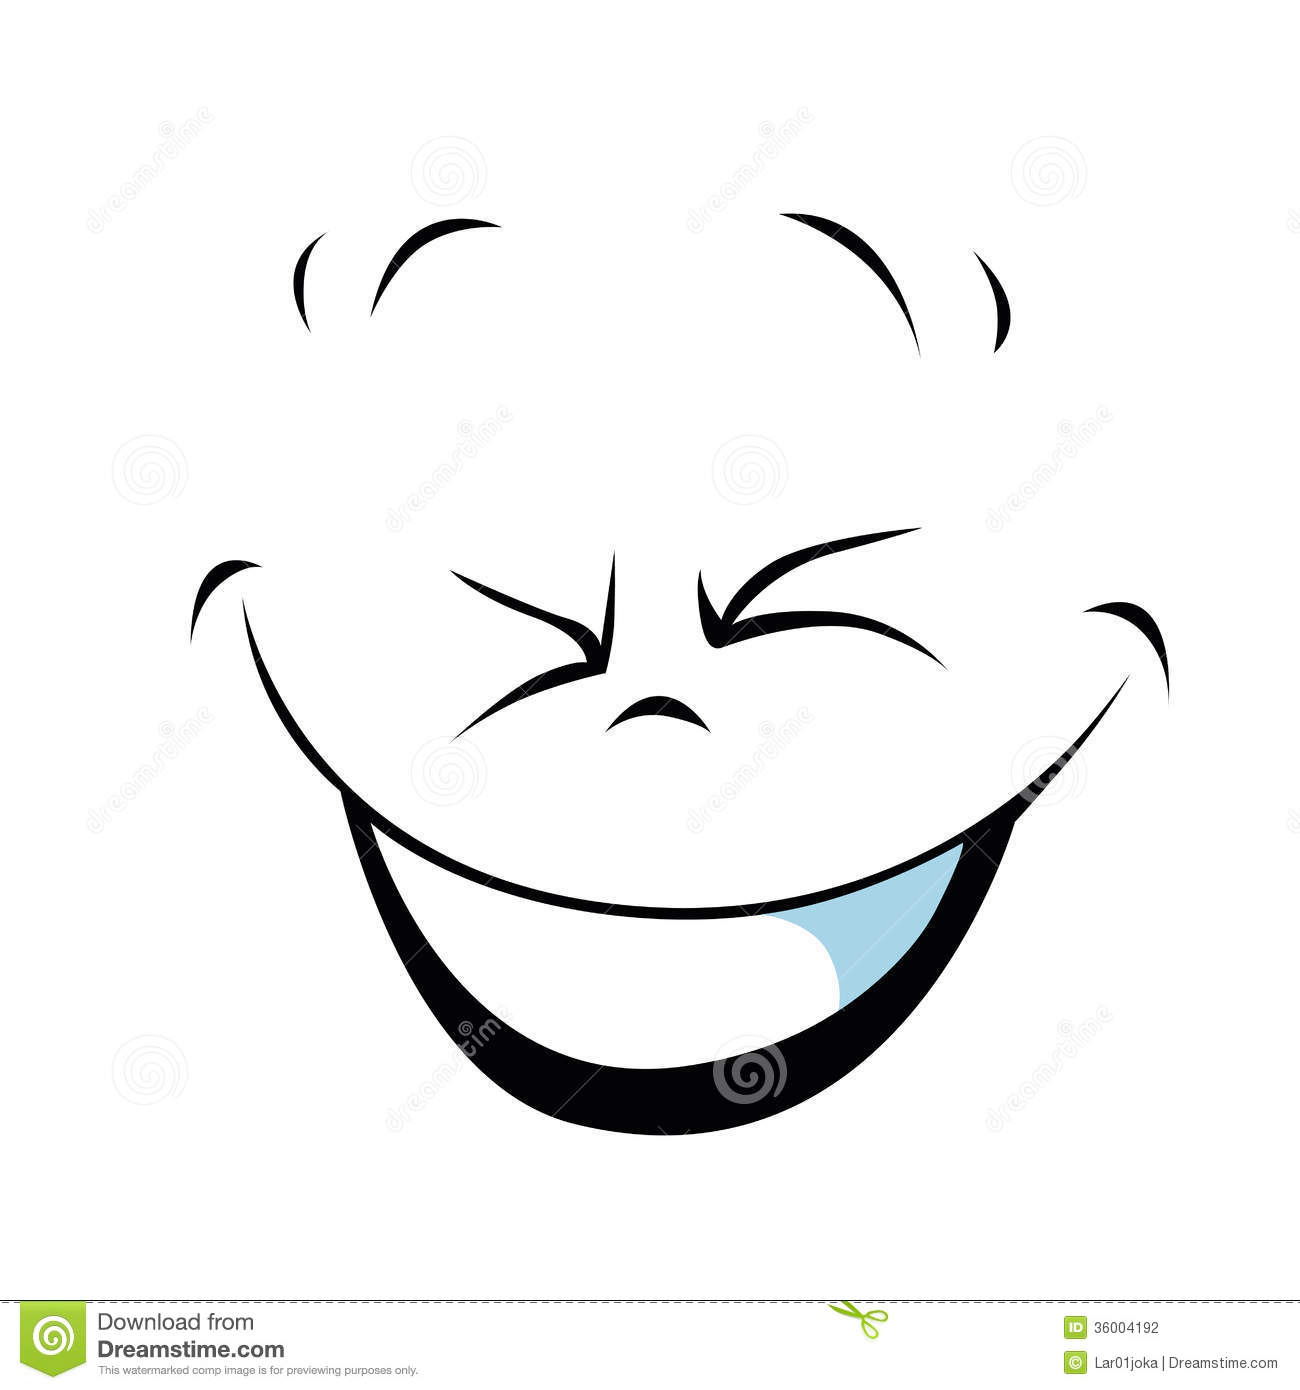 Laughing Smiley Face Black And White.